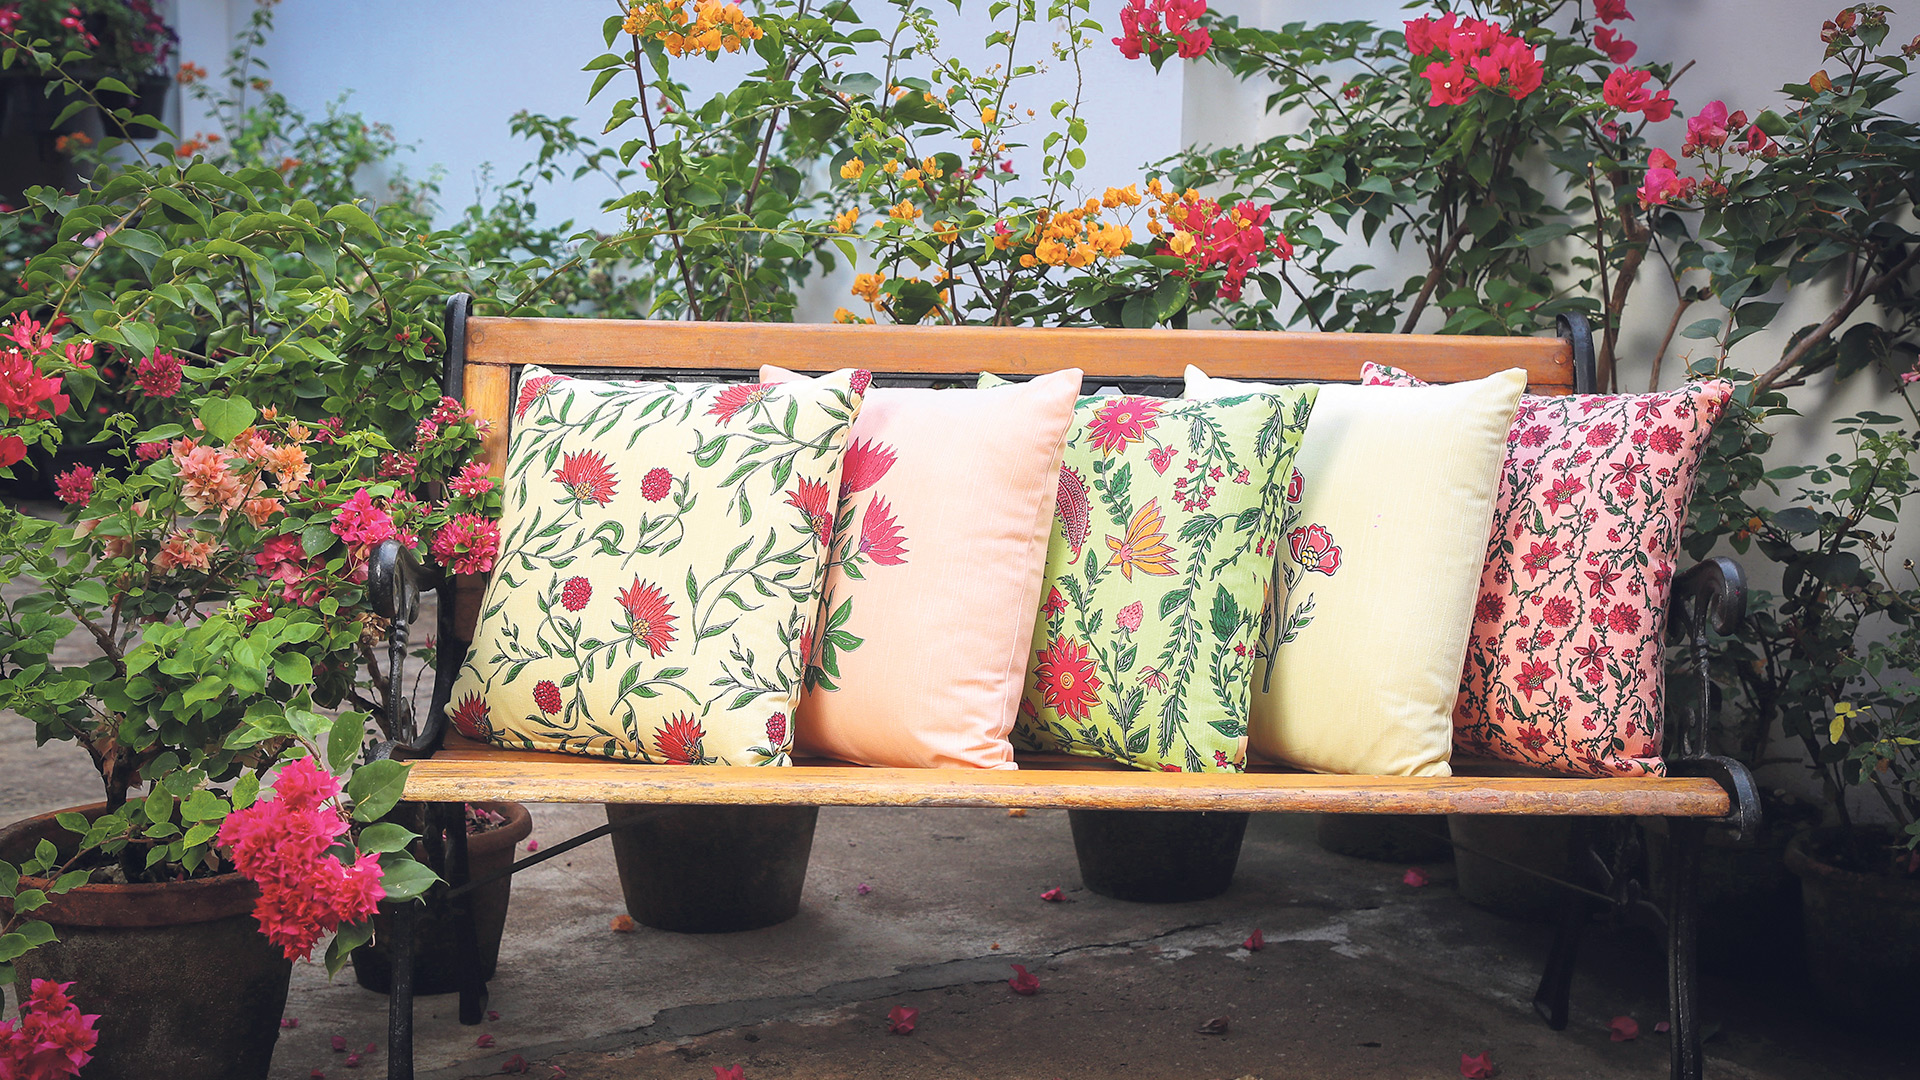 Win sustainable home textiles Worth £200*!